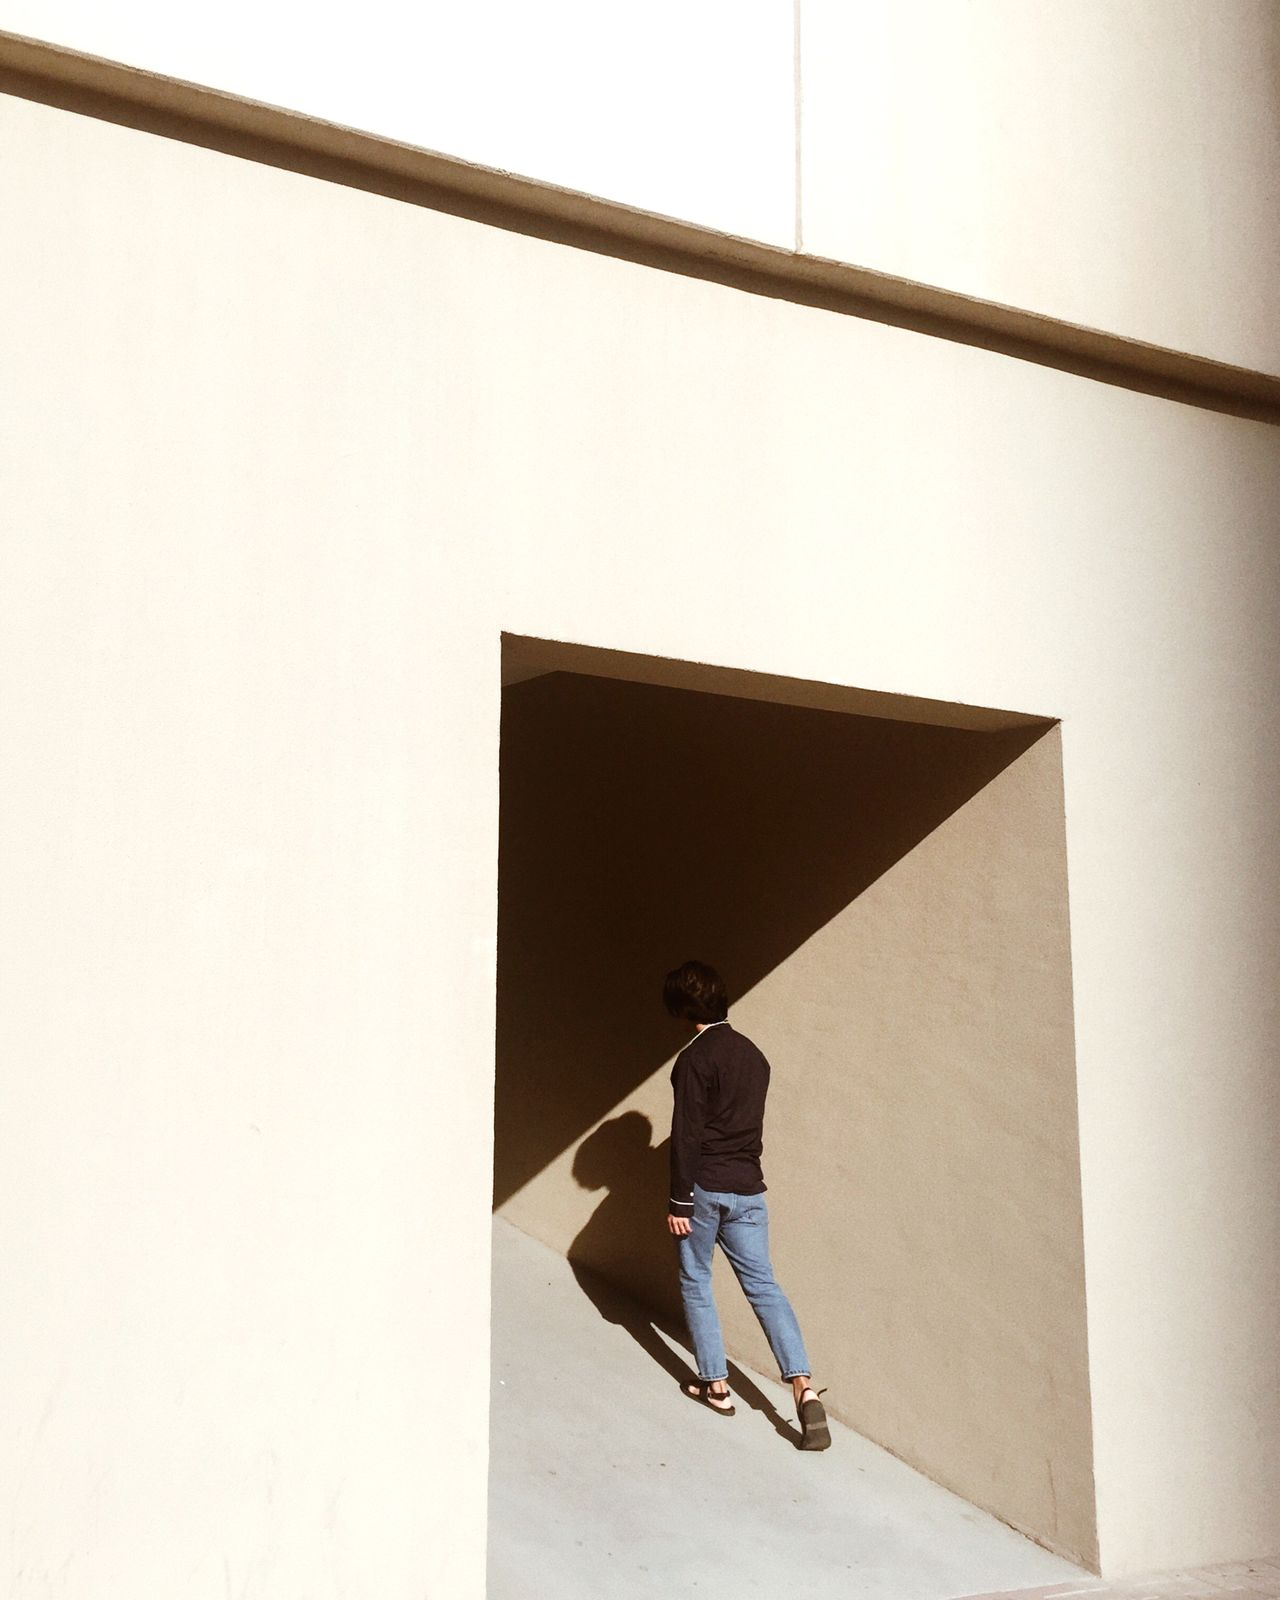 Architecture,  Built Structure,  Casual Clothing,  Day,  Dubai